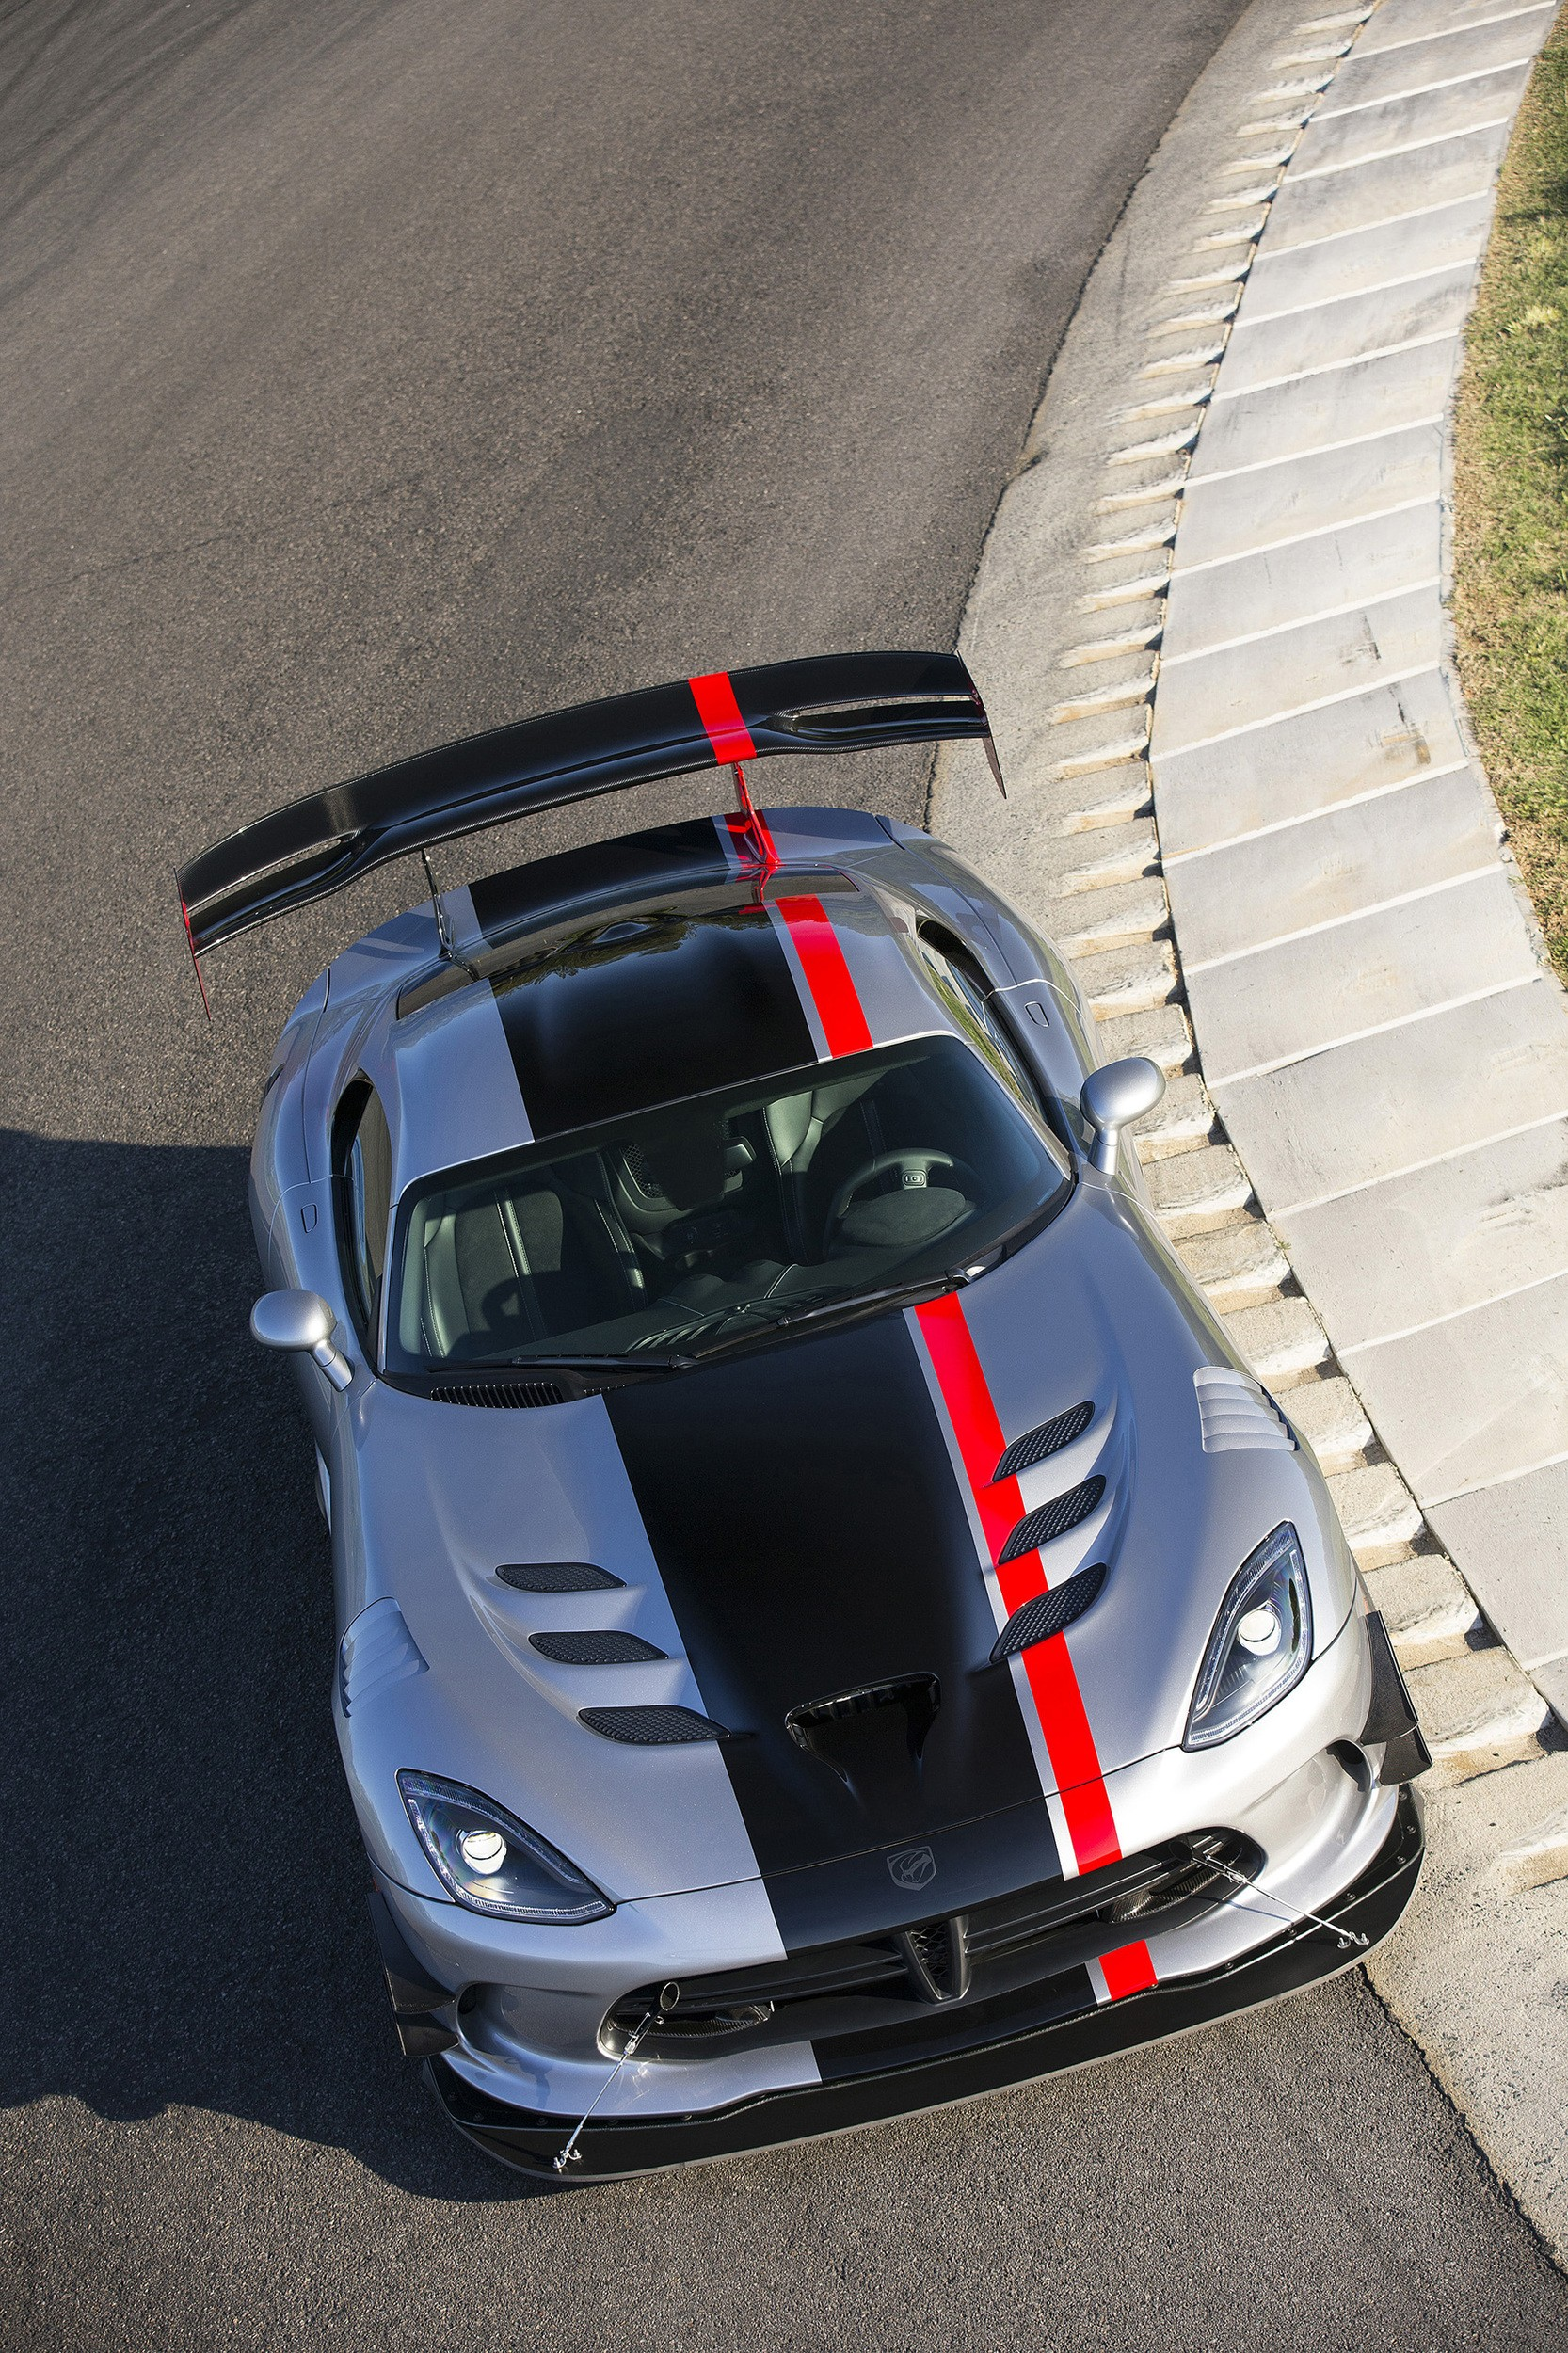 Auto Tune Up Cost >> That 2016 Dodge Viper ACR You Dream Of Owning Starts at $121,990 - autoevolution